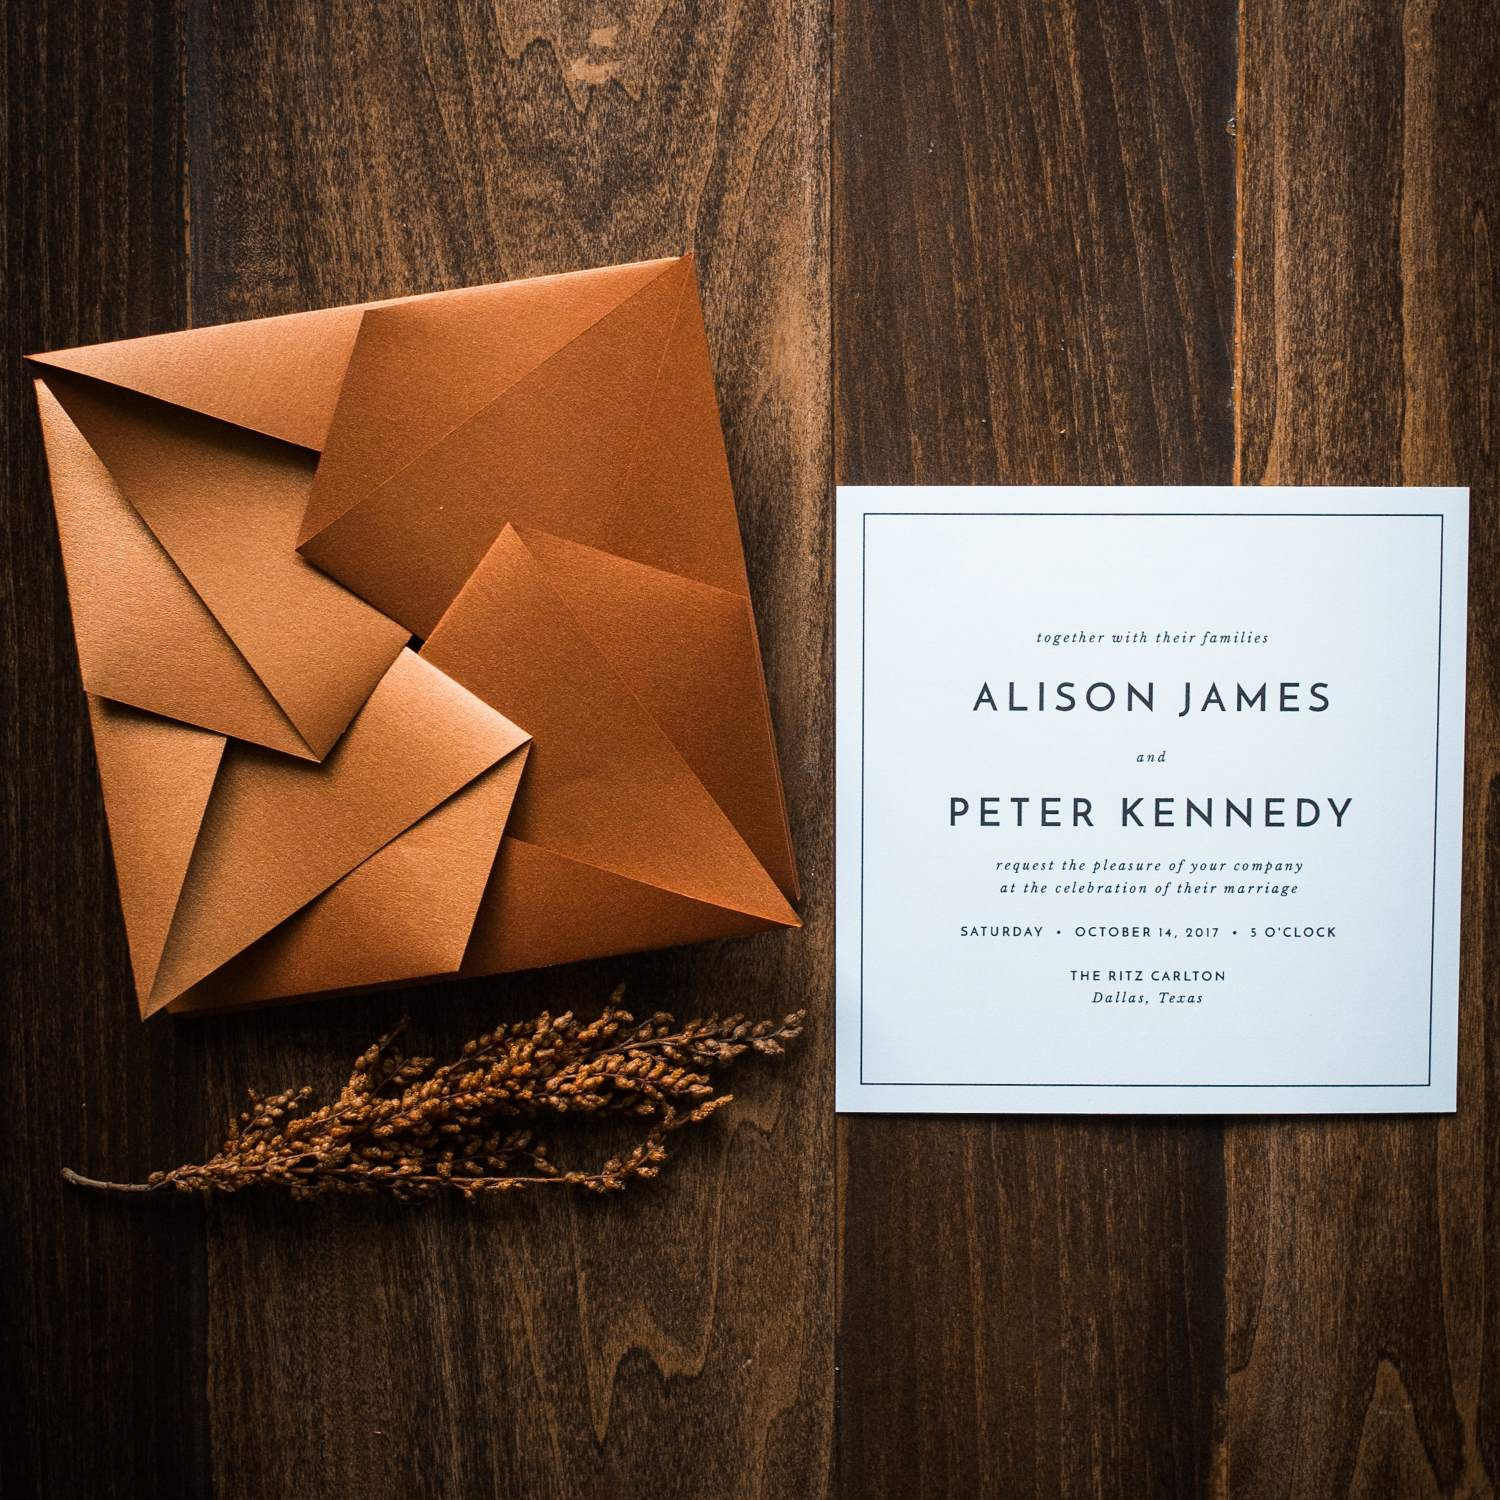 MODERN ORIGAMI WEDDING INVITATIONS PHOTO 4